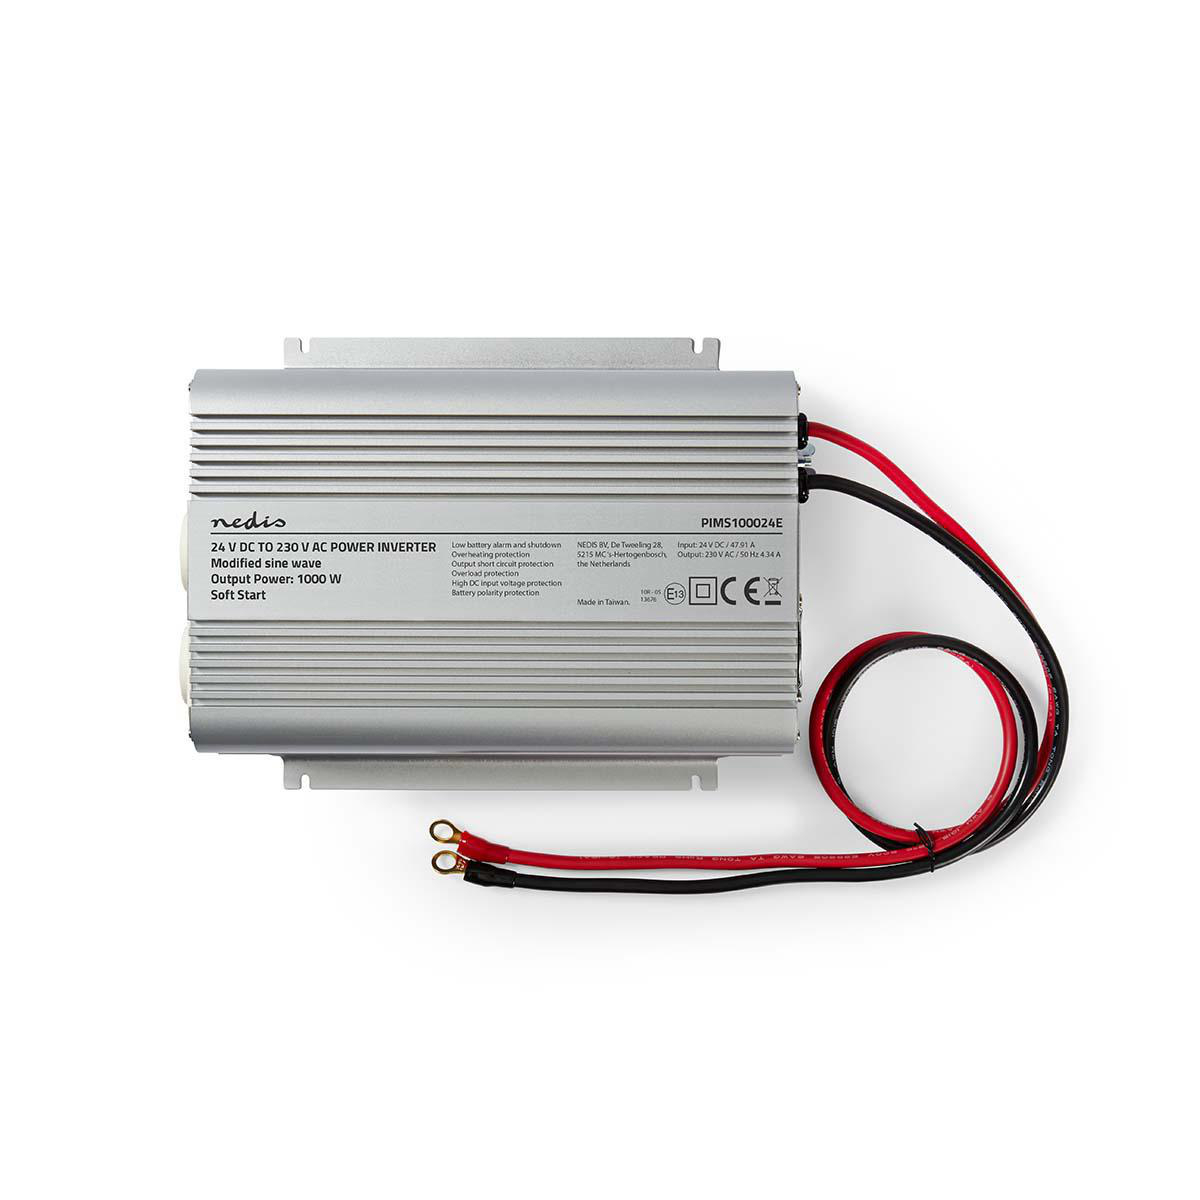 Power Inverter Modified Sine Wave | 24 V DC - 230 V AC